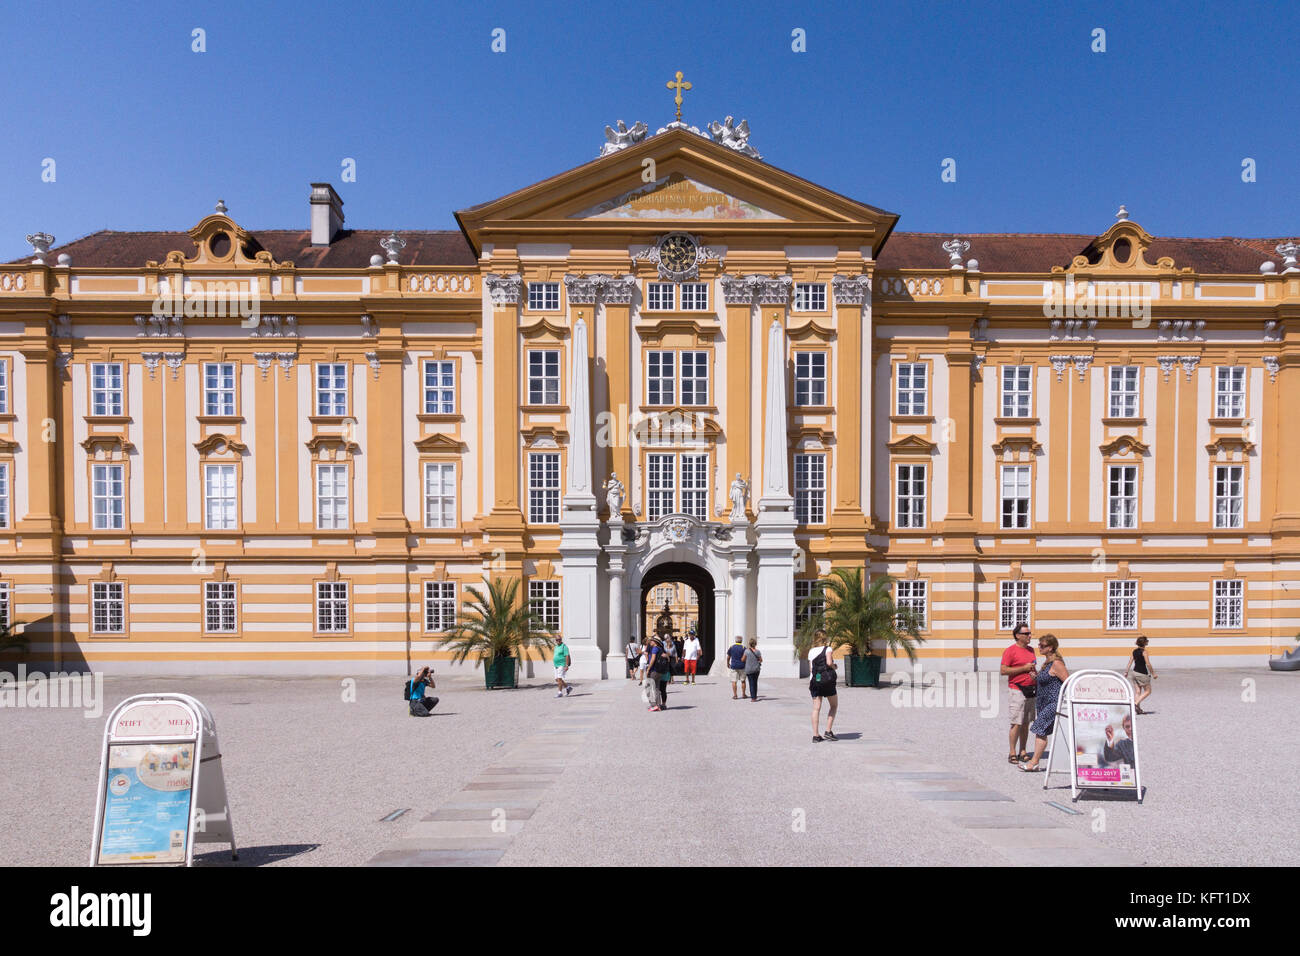 The main entrance to the magnificent Baroque Melk Abbey in the Wachau region of Lower Austria - Stock Image